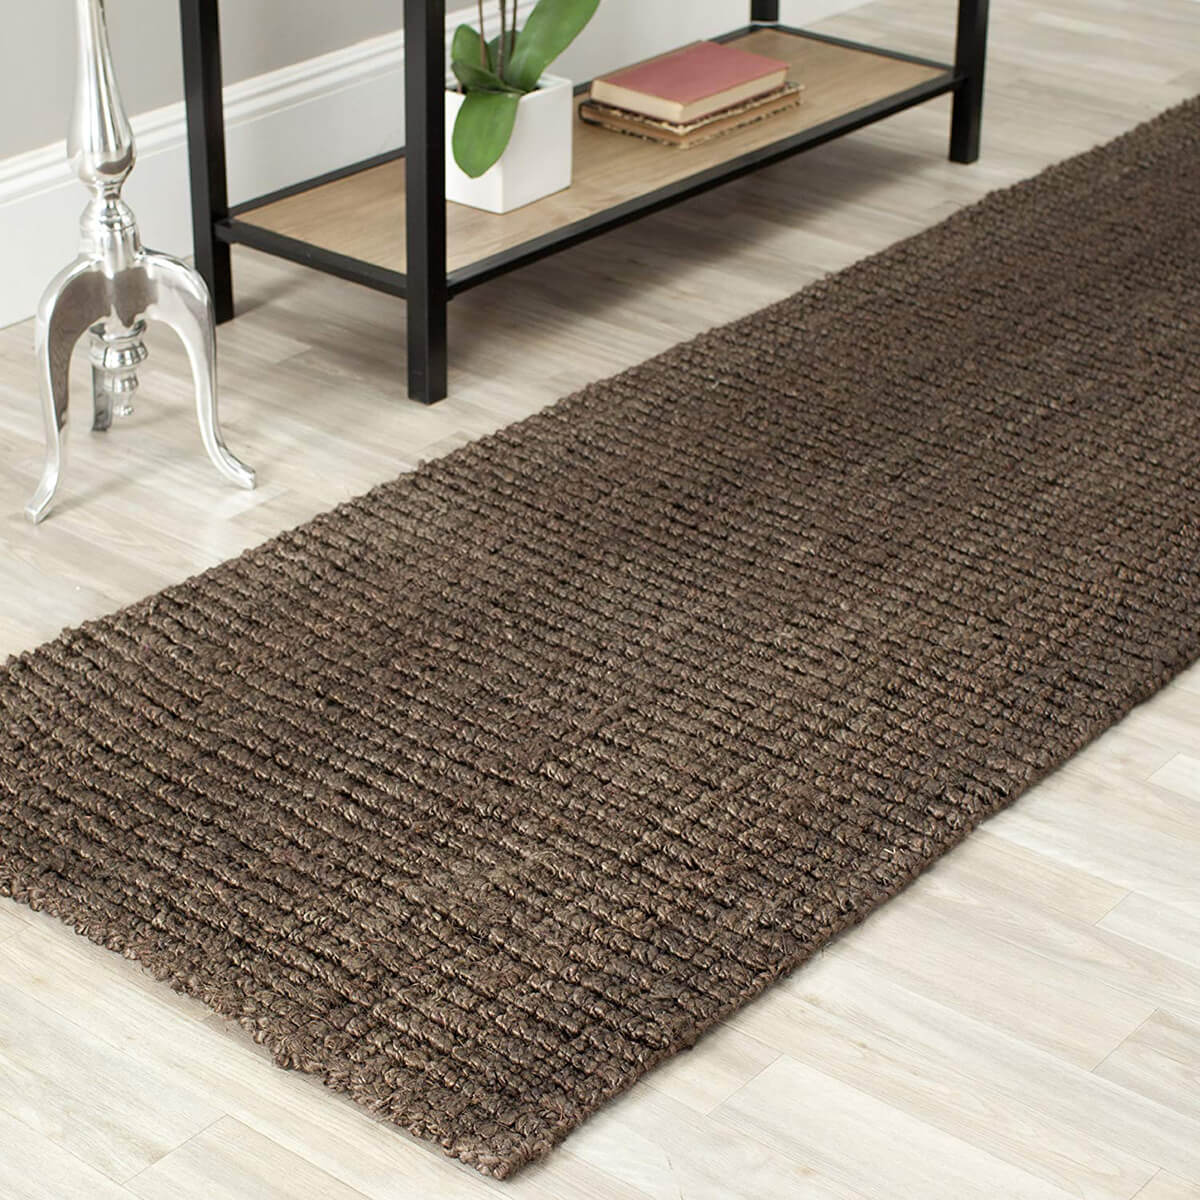 Small Woven Natural Jute Rug